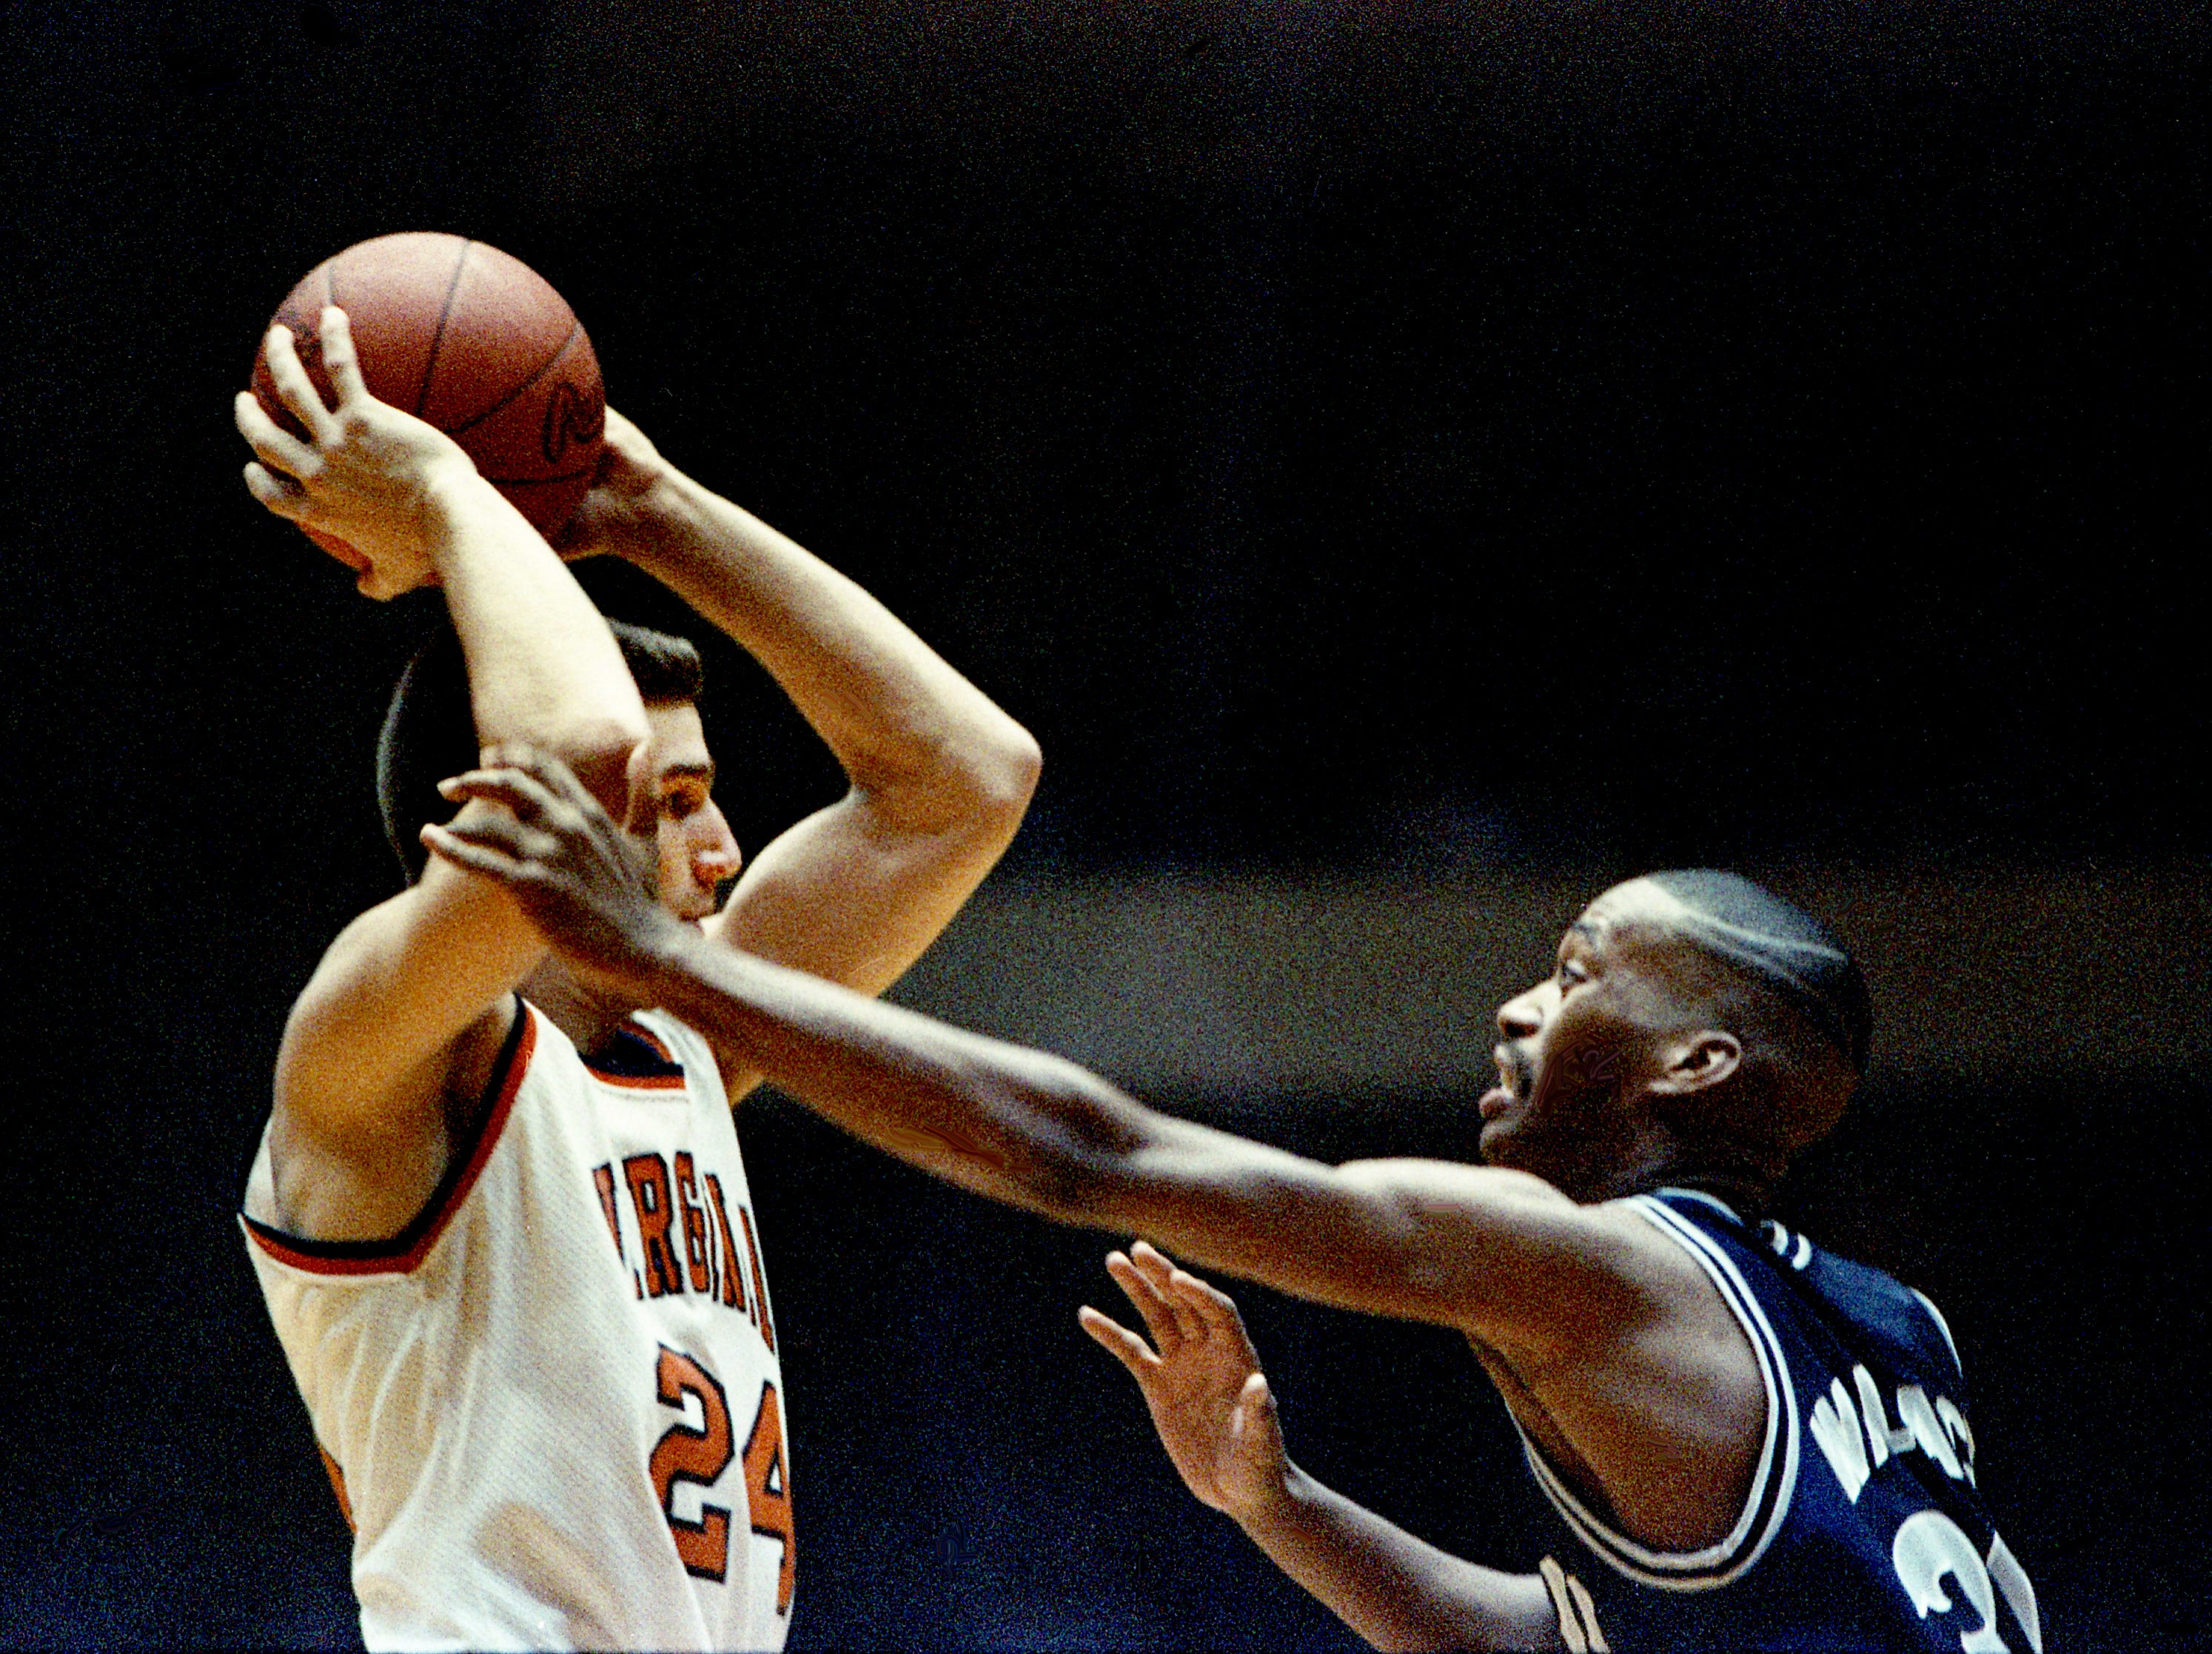 Middle Tennessee State's Kevin Wallace, right, puts the defense pressure on Dirk Katstra of Virginia, but it wasn't enough as the Blue Raiders fall 104-88 in the second round of the NCAA Southeast Regional before a crowd of 13,543 at Vanderbilt's Memorial Gym on March 18, 1989.